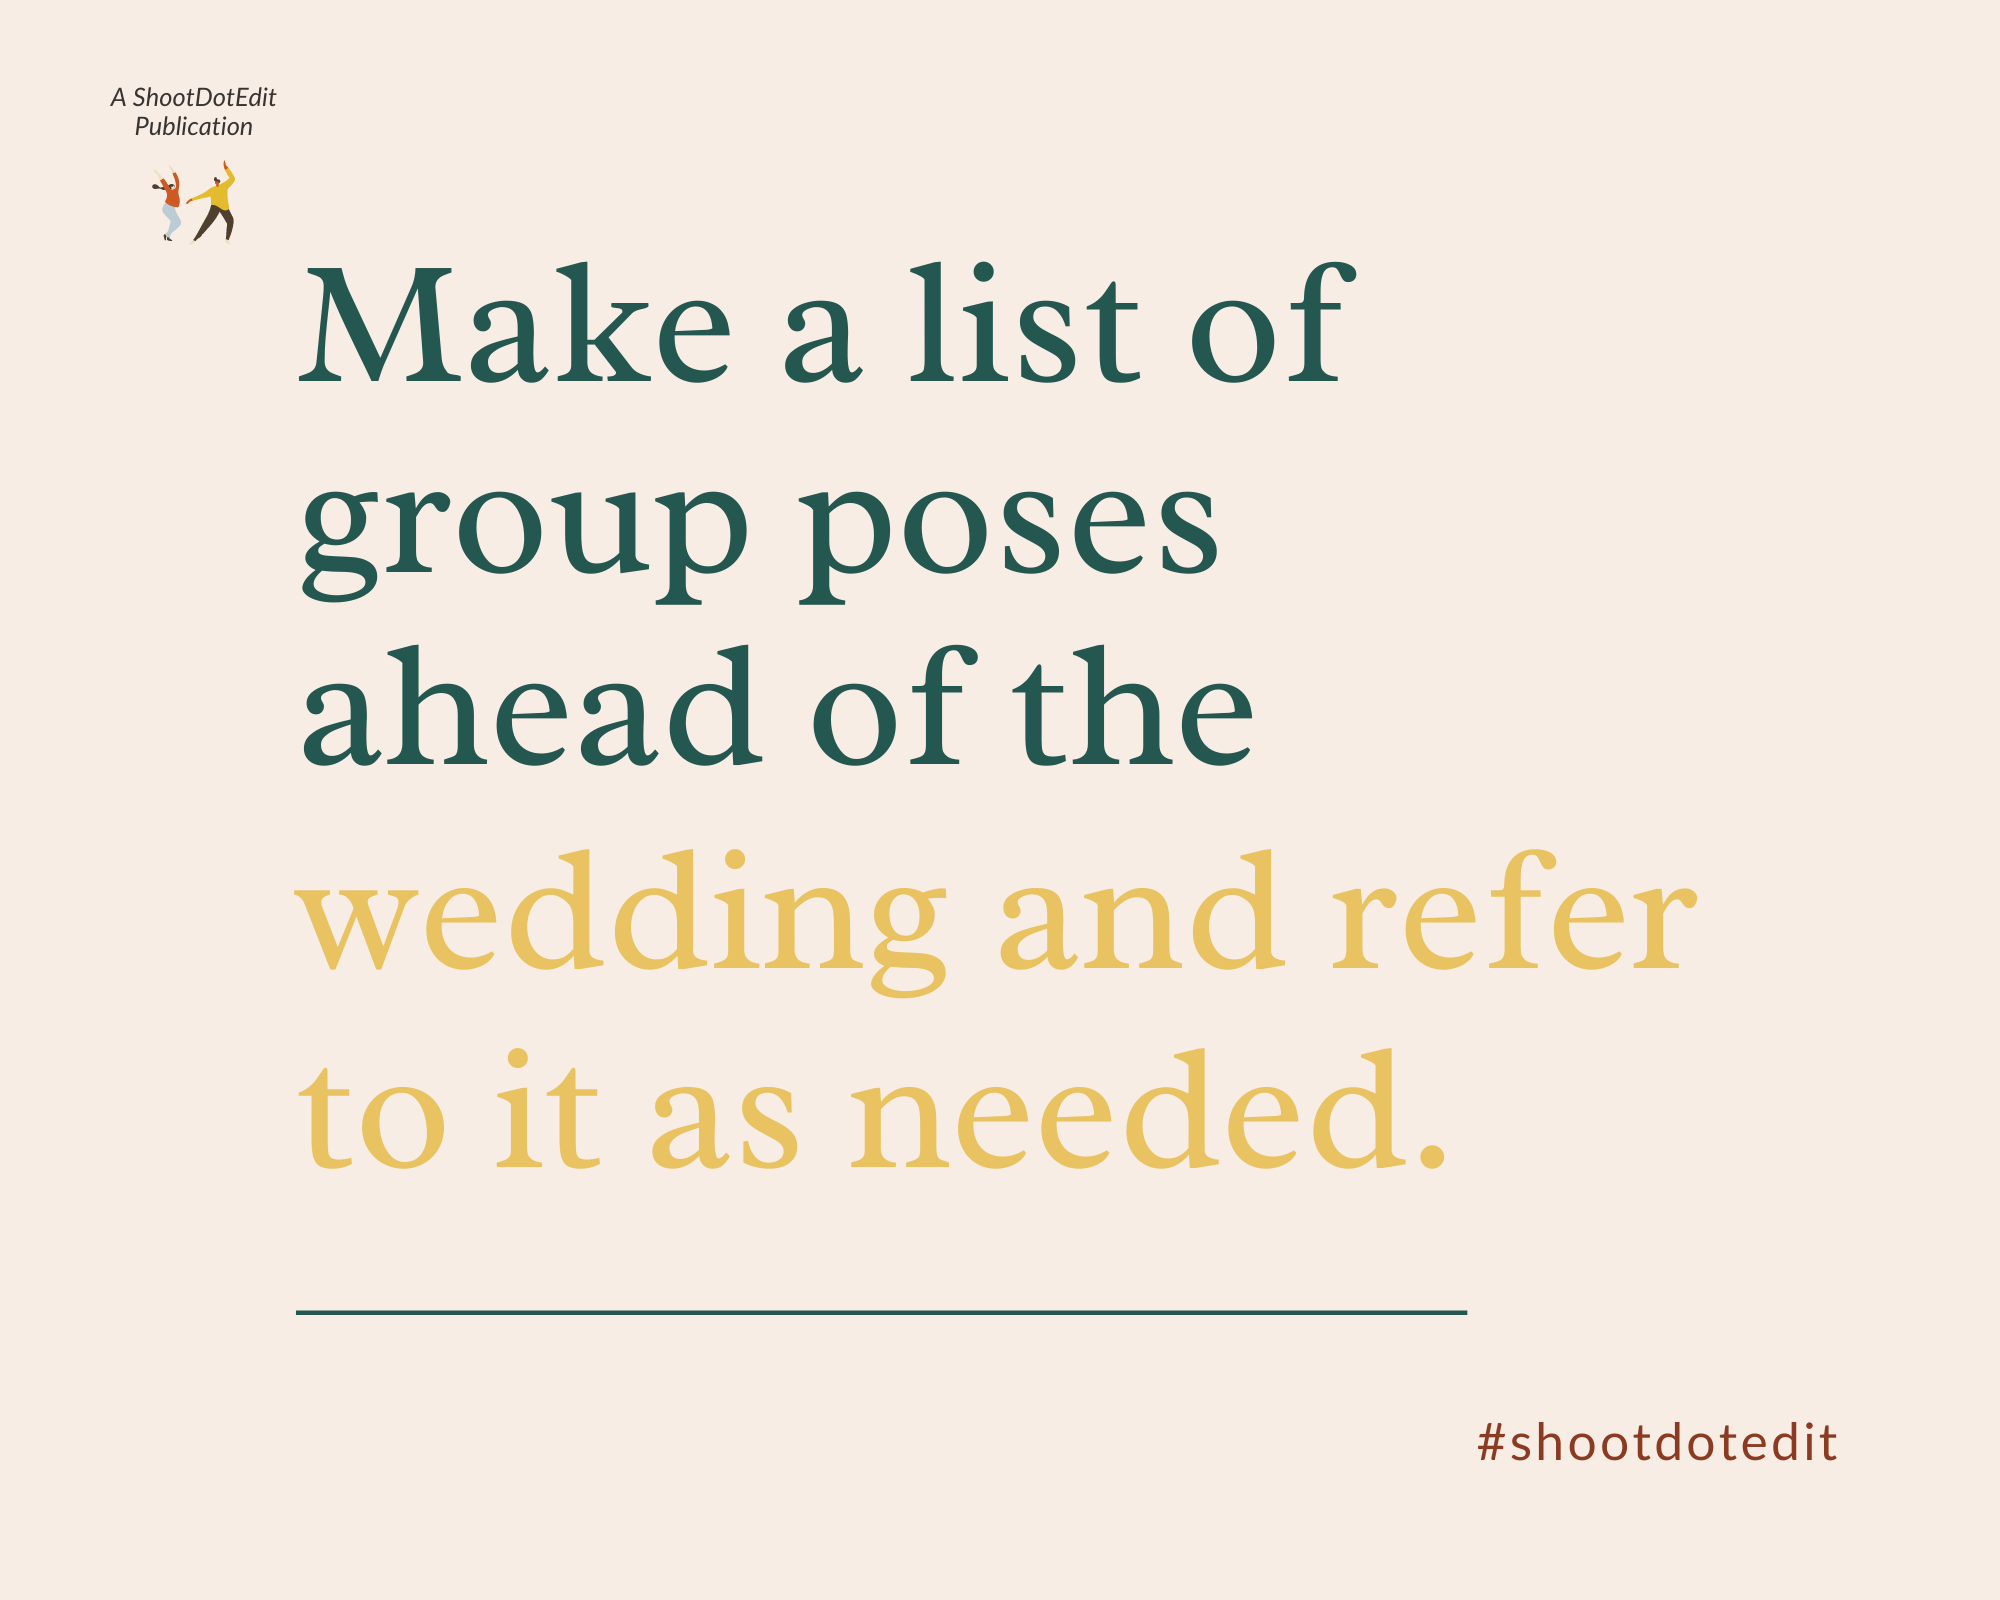 Infographic stating make a list of wedding group poses ahead of the wedding and refer to it as needed